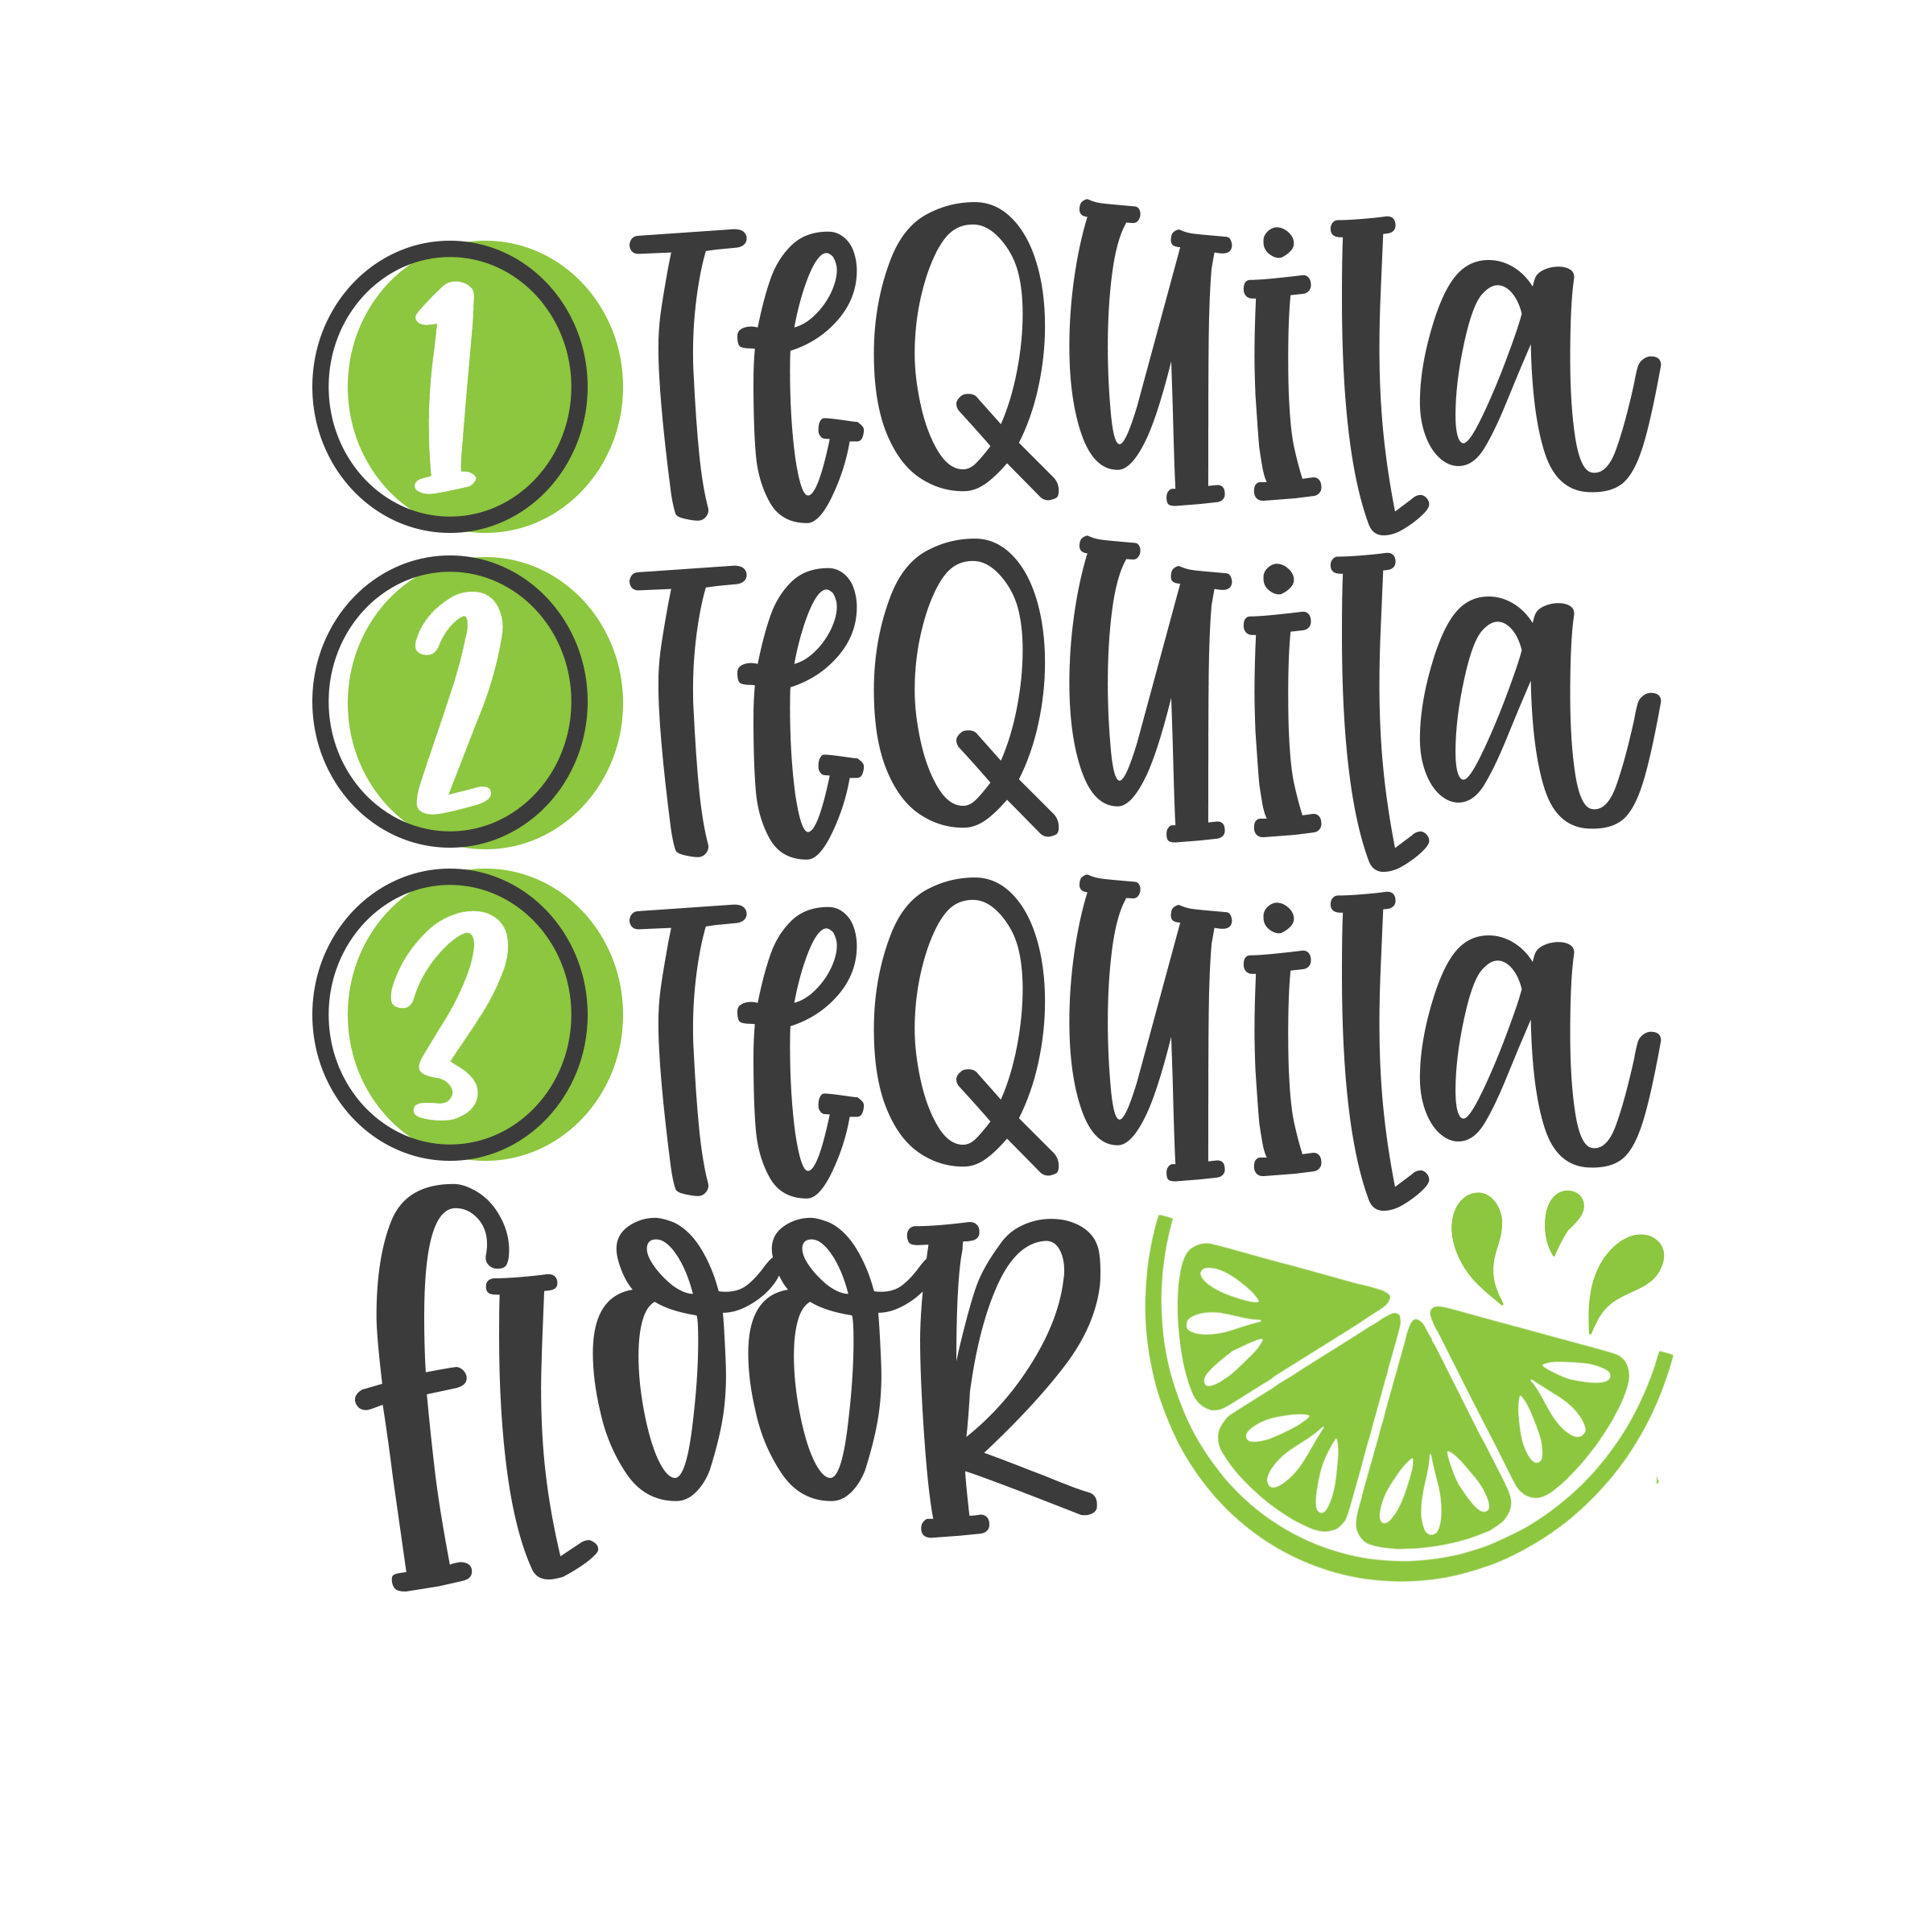 1 tequila 2 tequila 3 tequila